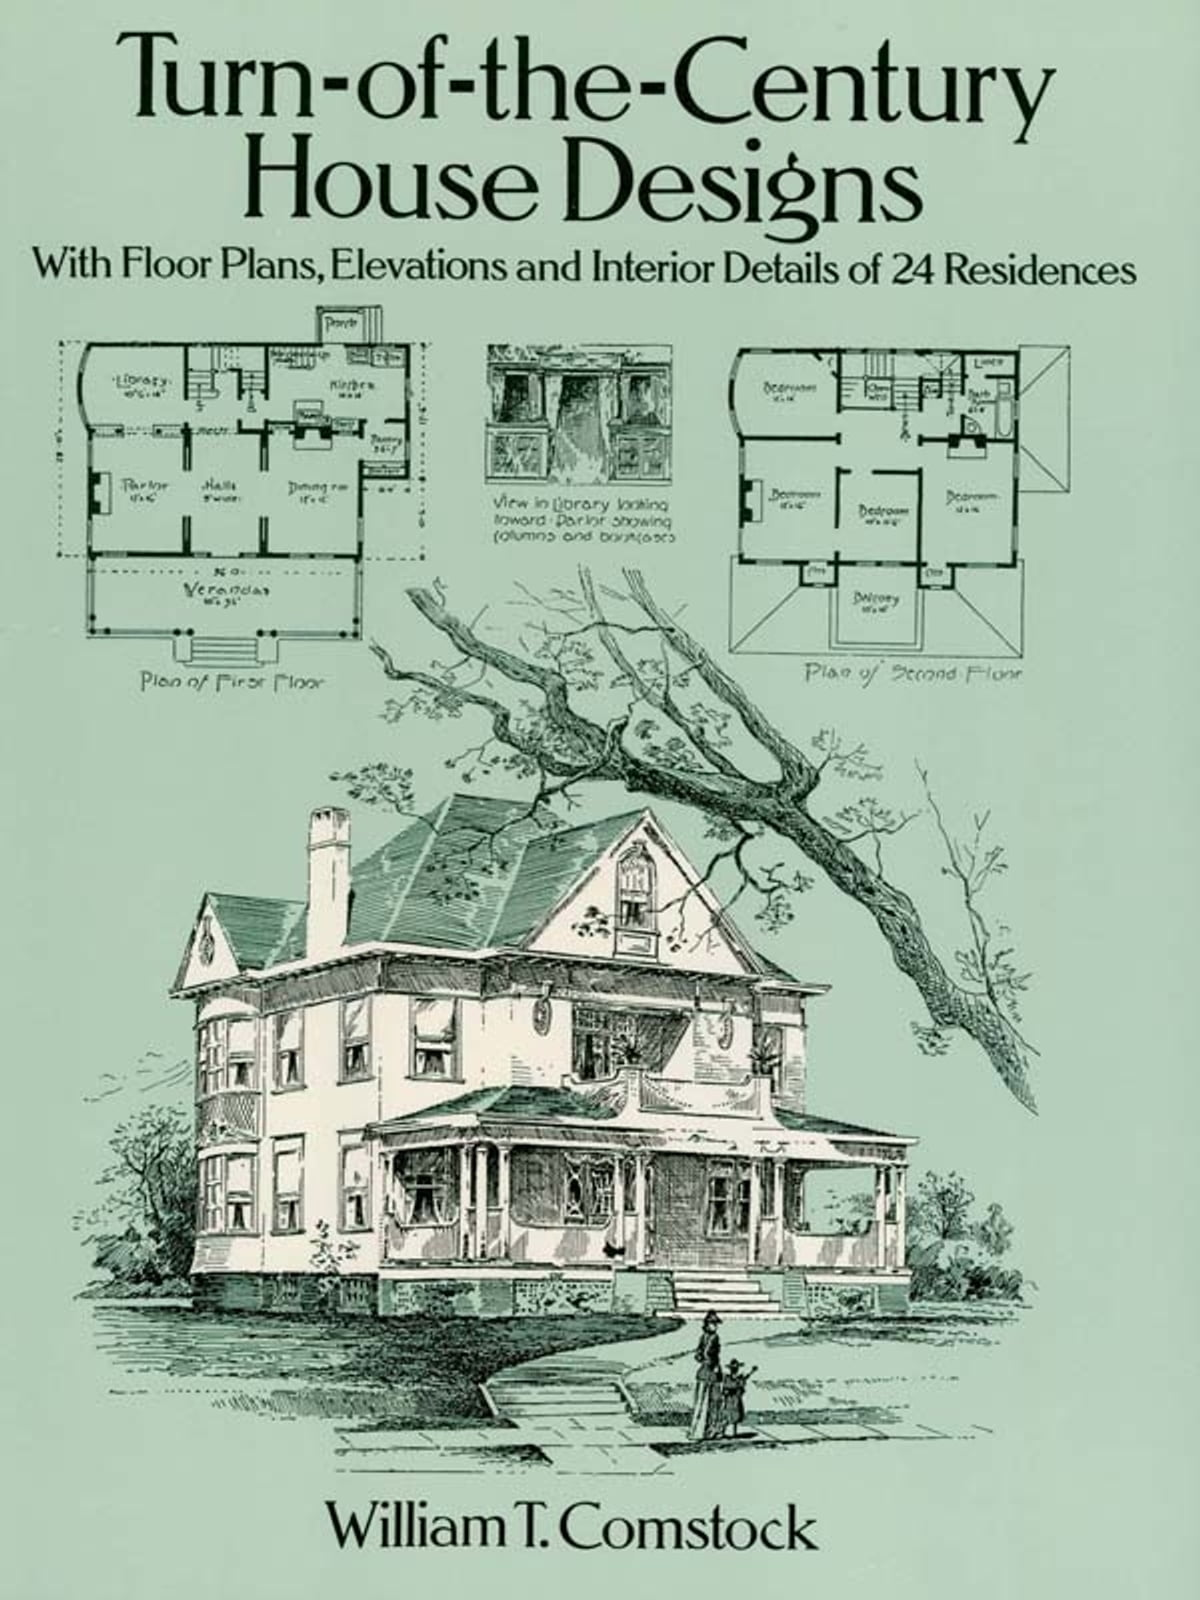 Turn-of-the-Century House Designs eBook by William T. Comstock -  9780486157689 | Rakuten Kobo